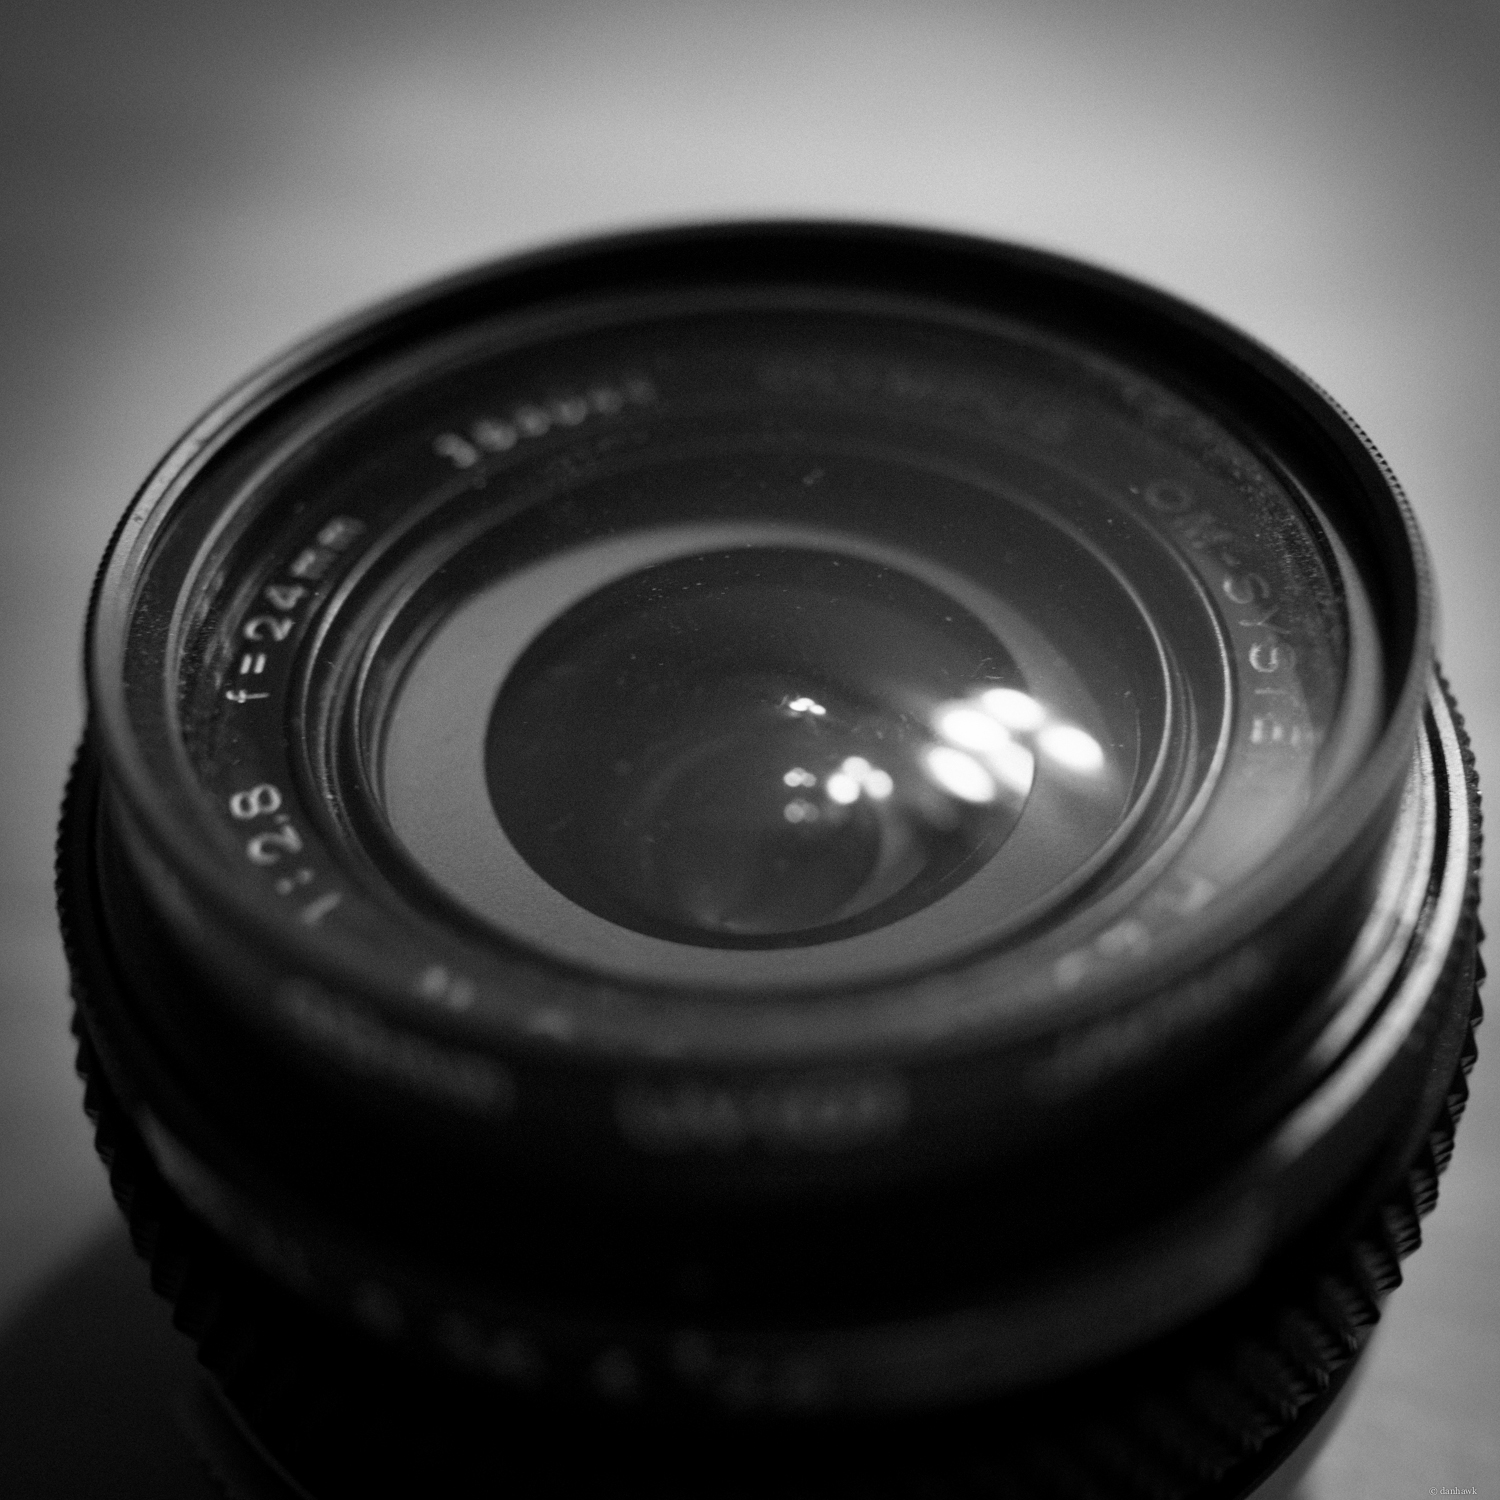 Old Lenses Are Cool  | 365 Project | September 17th, 2013 | 24mm, f/3.2, ISO 1600, 1/60